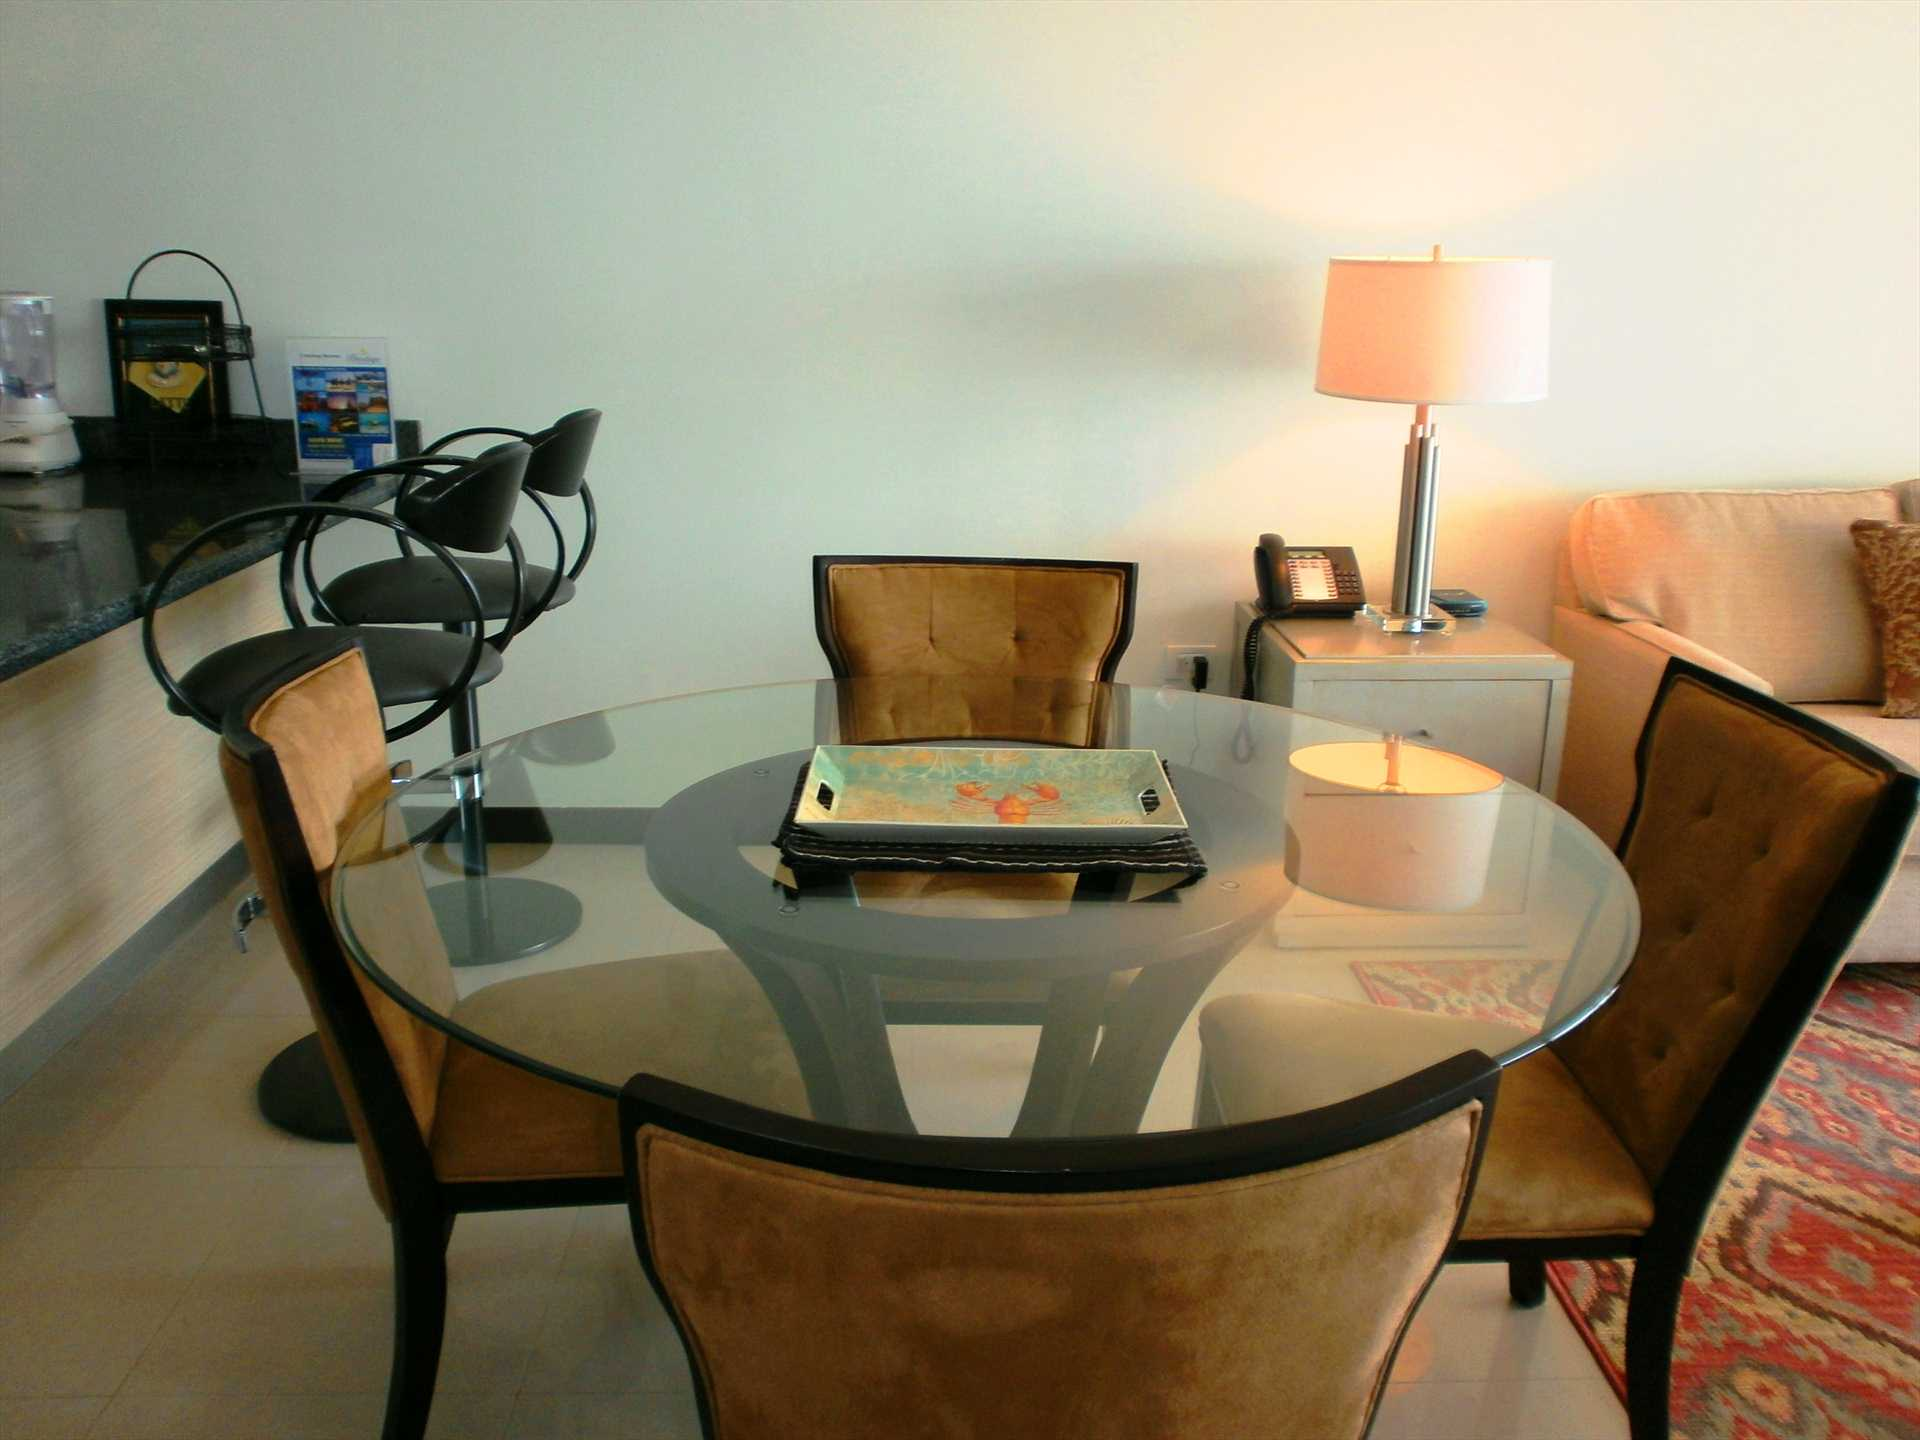 4-seat round dining table